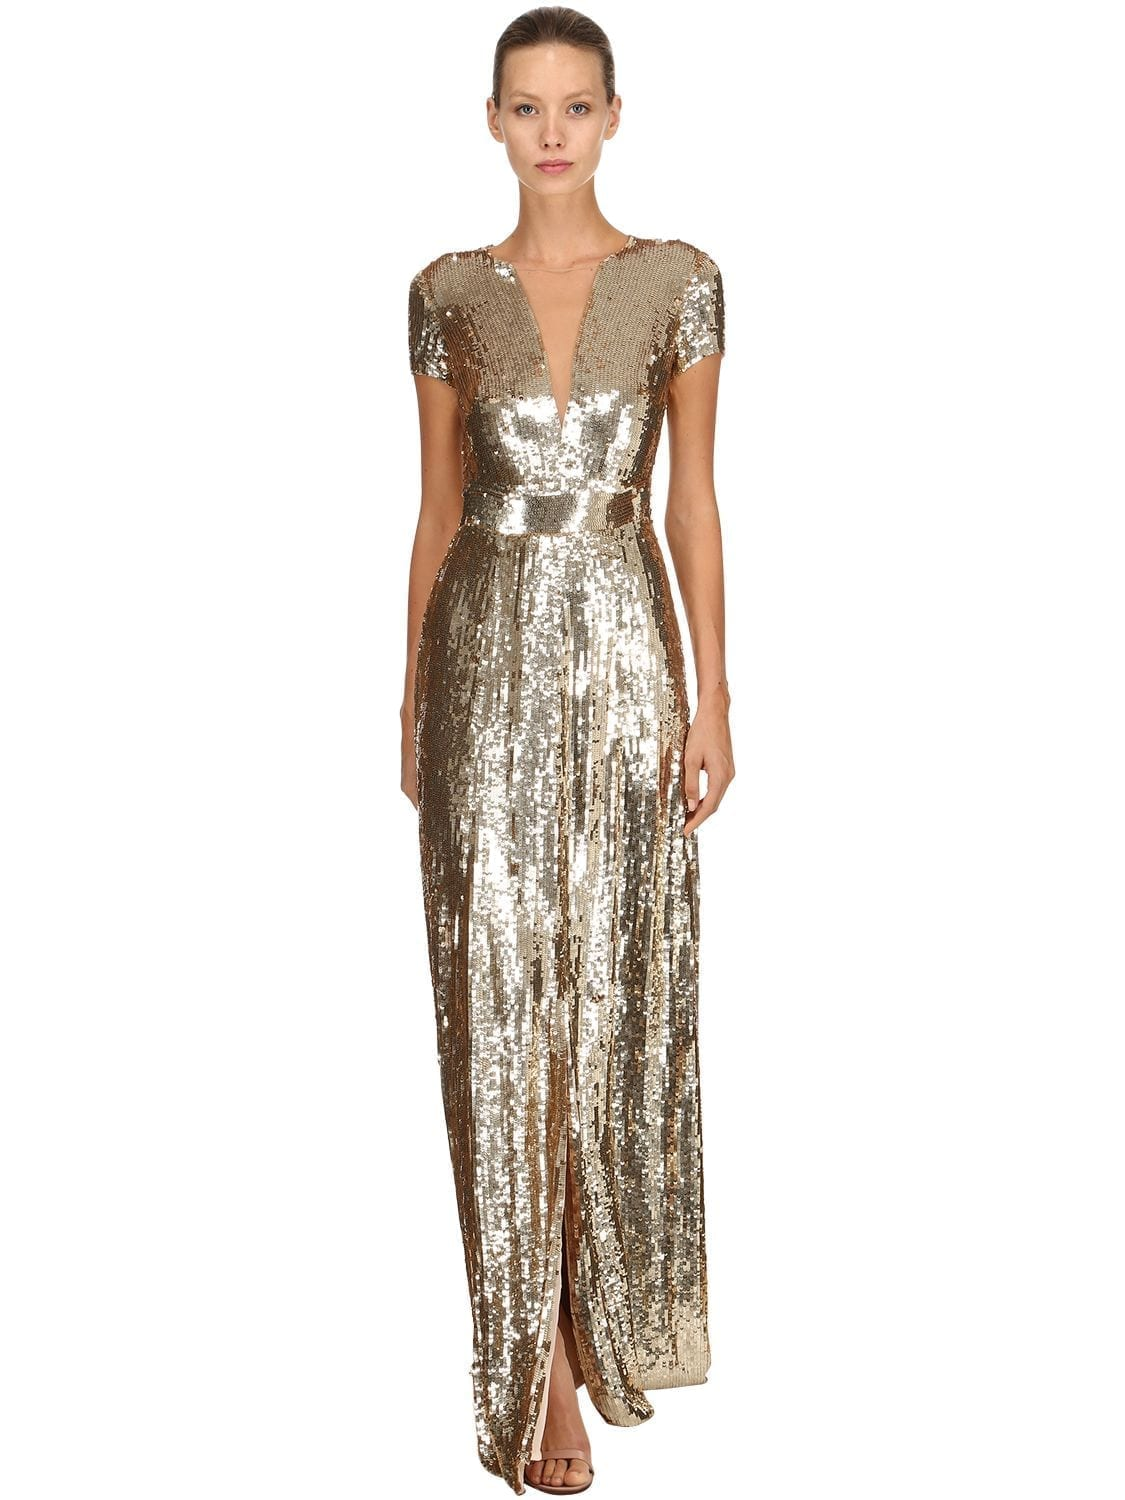 TEMPERLEY LONDON Back Cutout Sequined Long Gold Dress